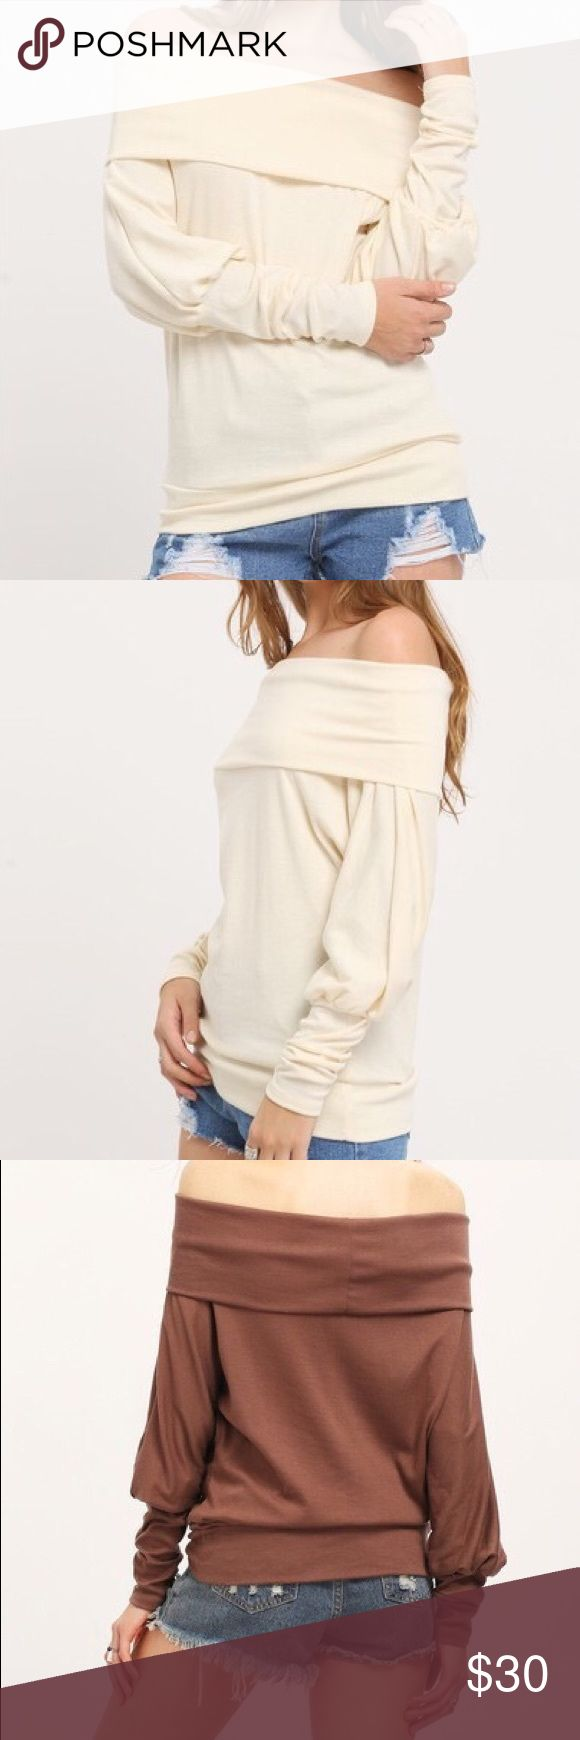 "Coming Creamy open shoulder batwing T shirt S Bust 41"" length 23.6"" M Bust 42.5"" length 24"" L Bust 44"" length 24.8"" XL 45.5"" length 25.2"" Tops Tees - Long Sleeve"